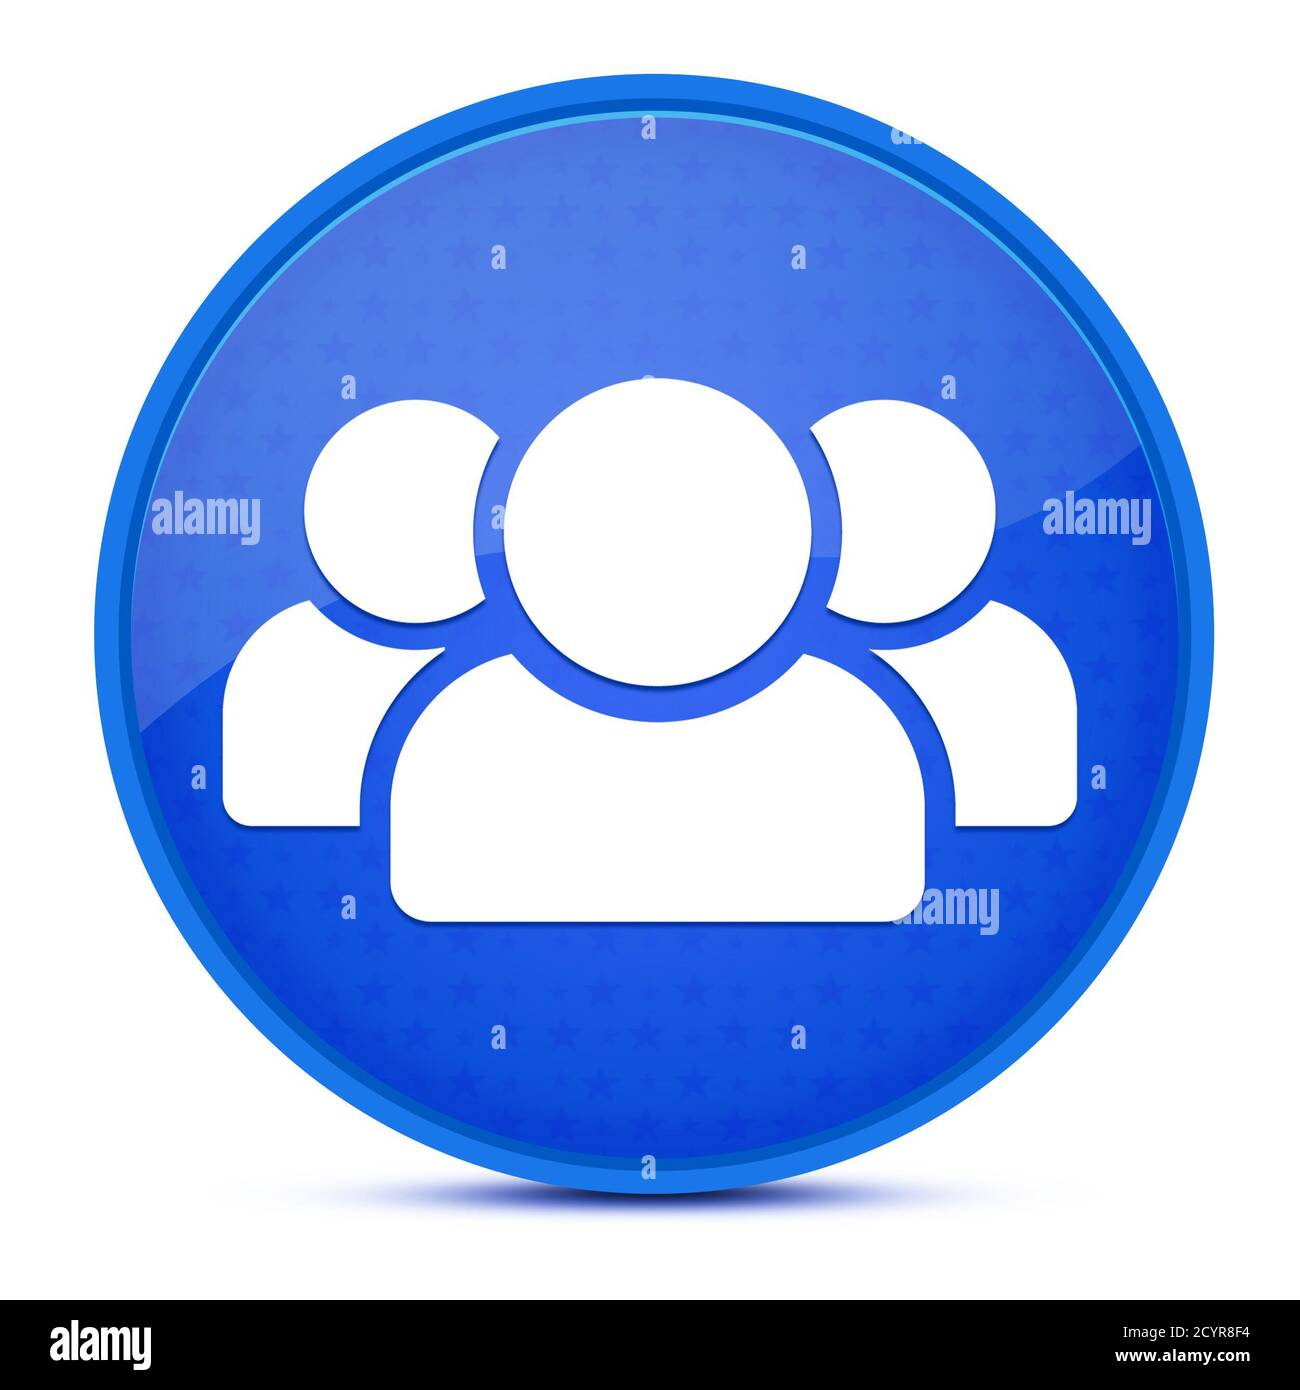 People aesthetic glossy blue round button abstract illustration Stock Photo